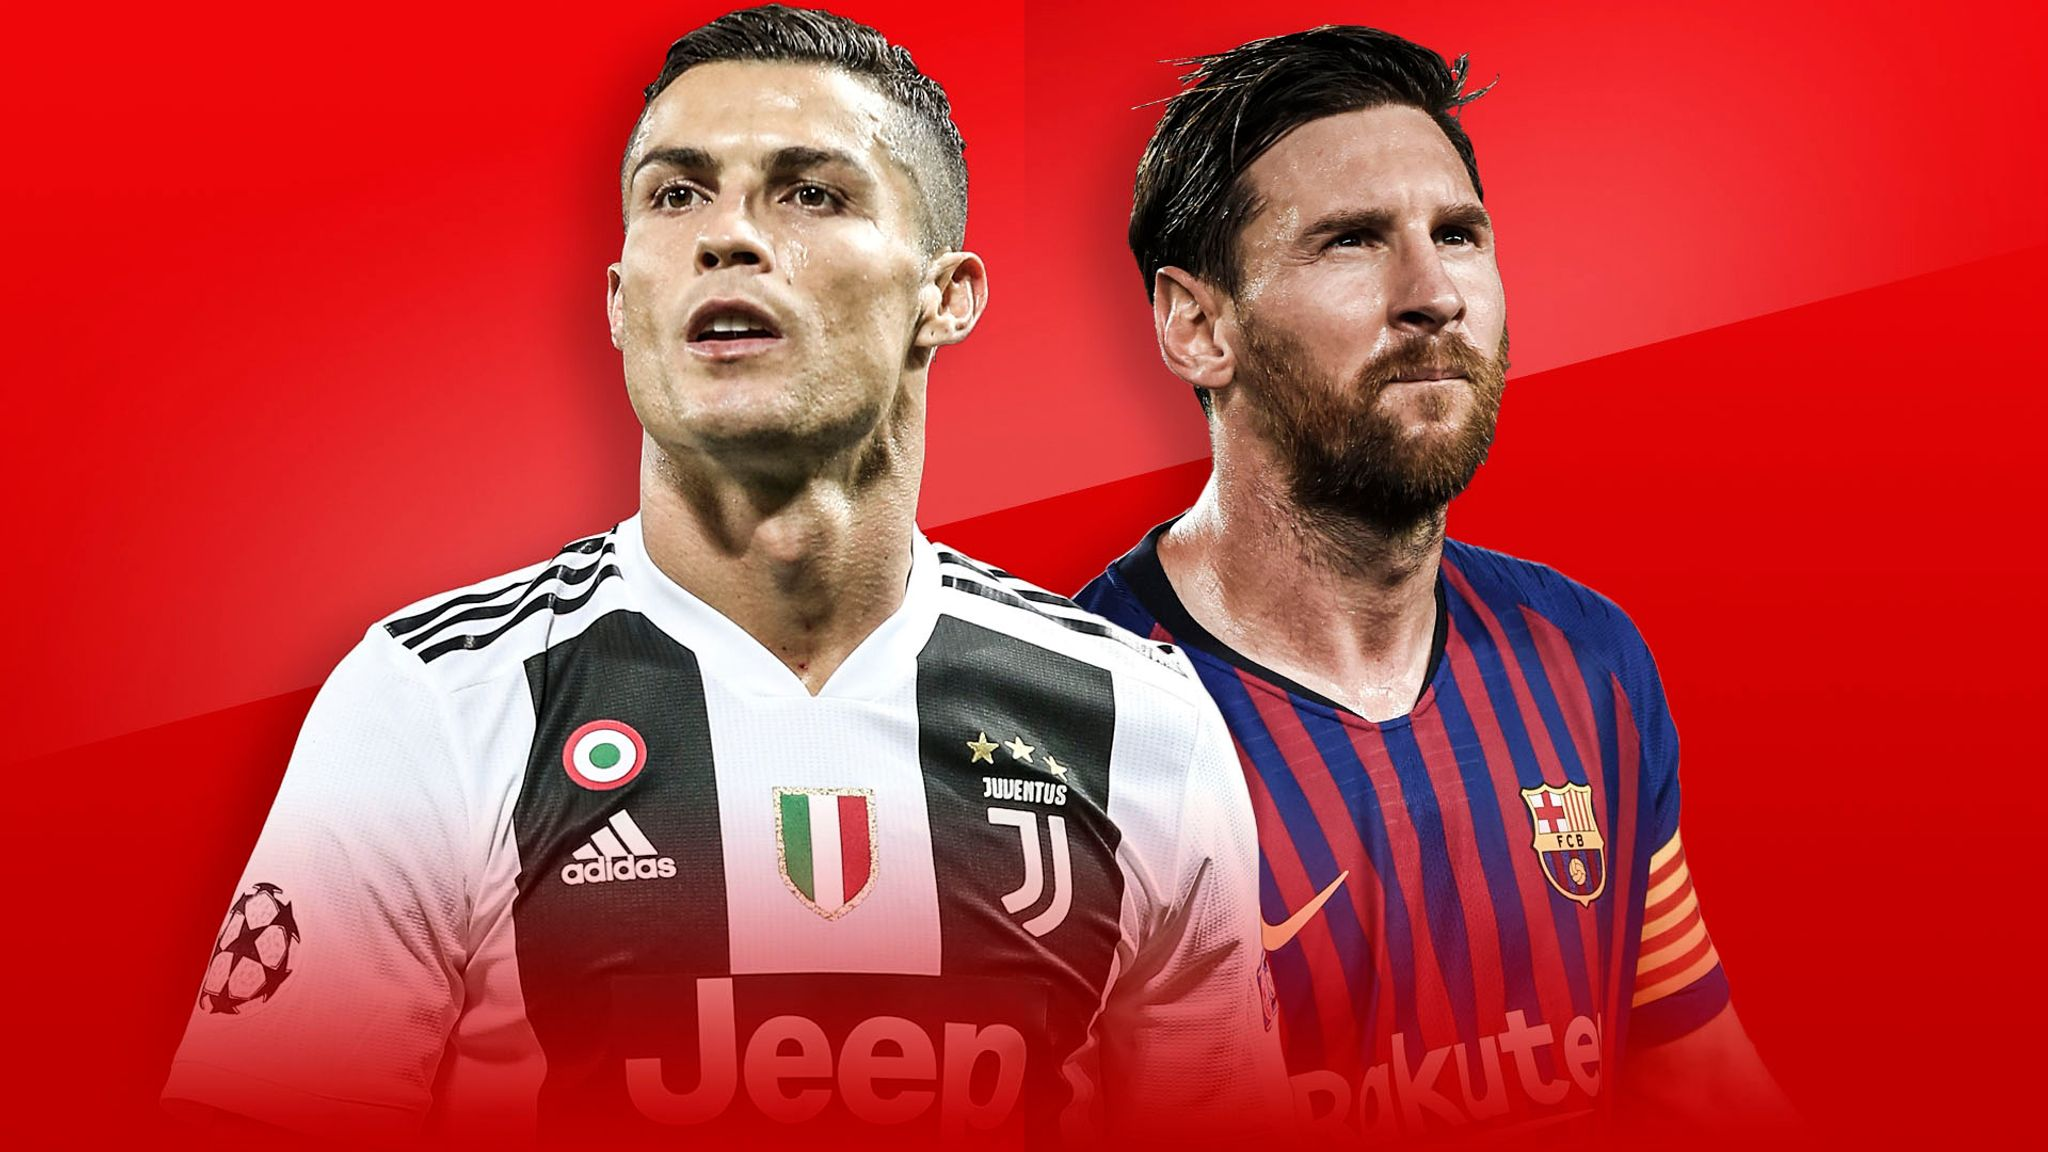 lionel messi shines but cristiano ronaldo is champions league king football news sky sports sky sports